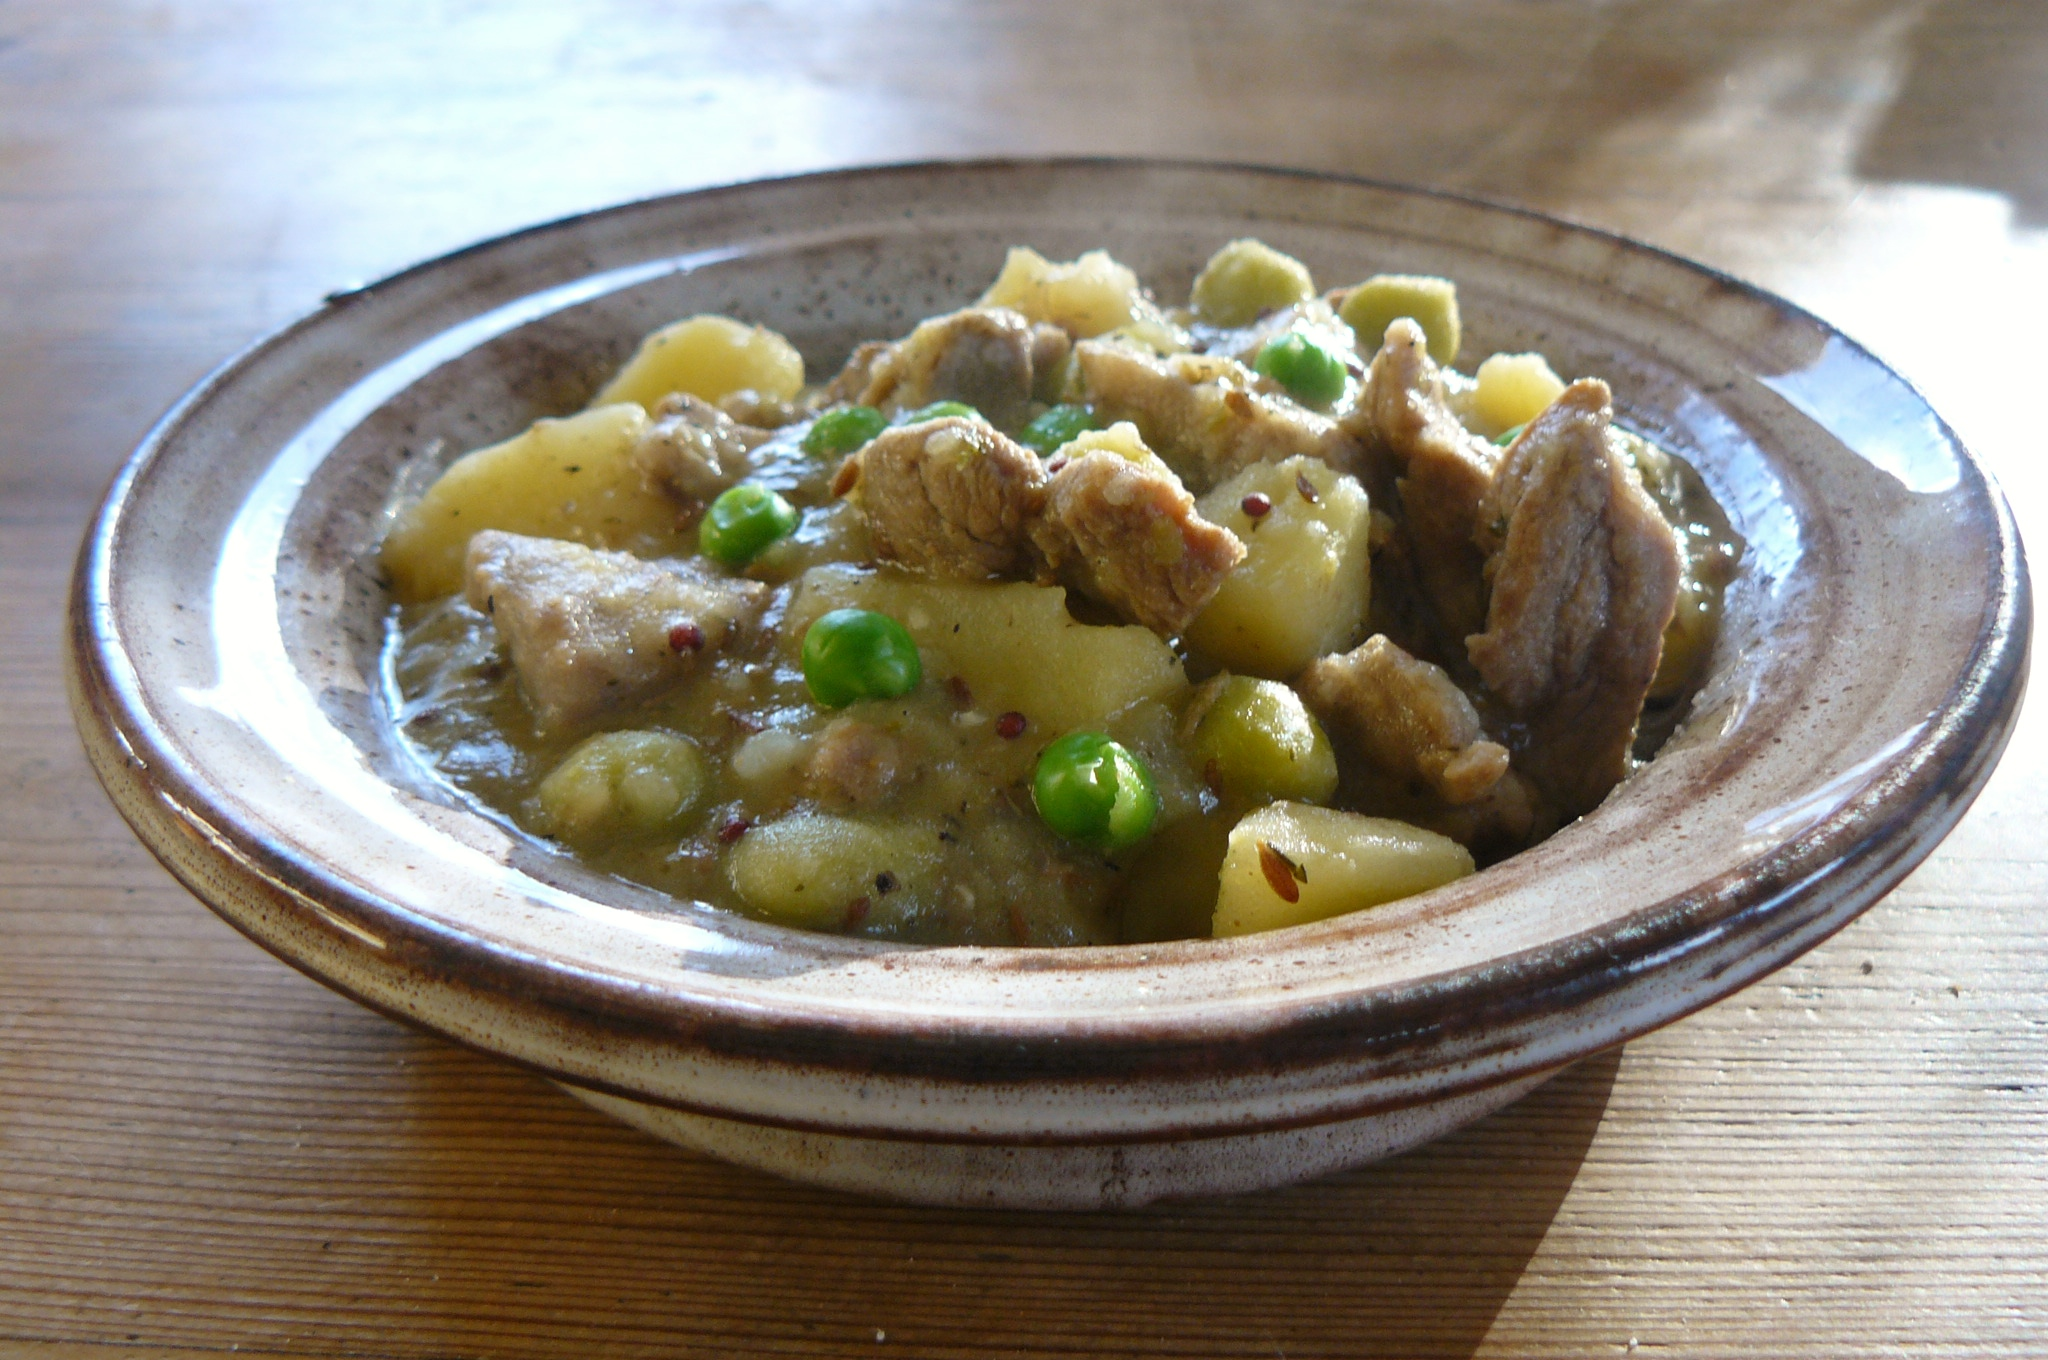 Lamb Stew with Herbs